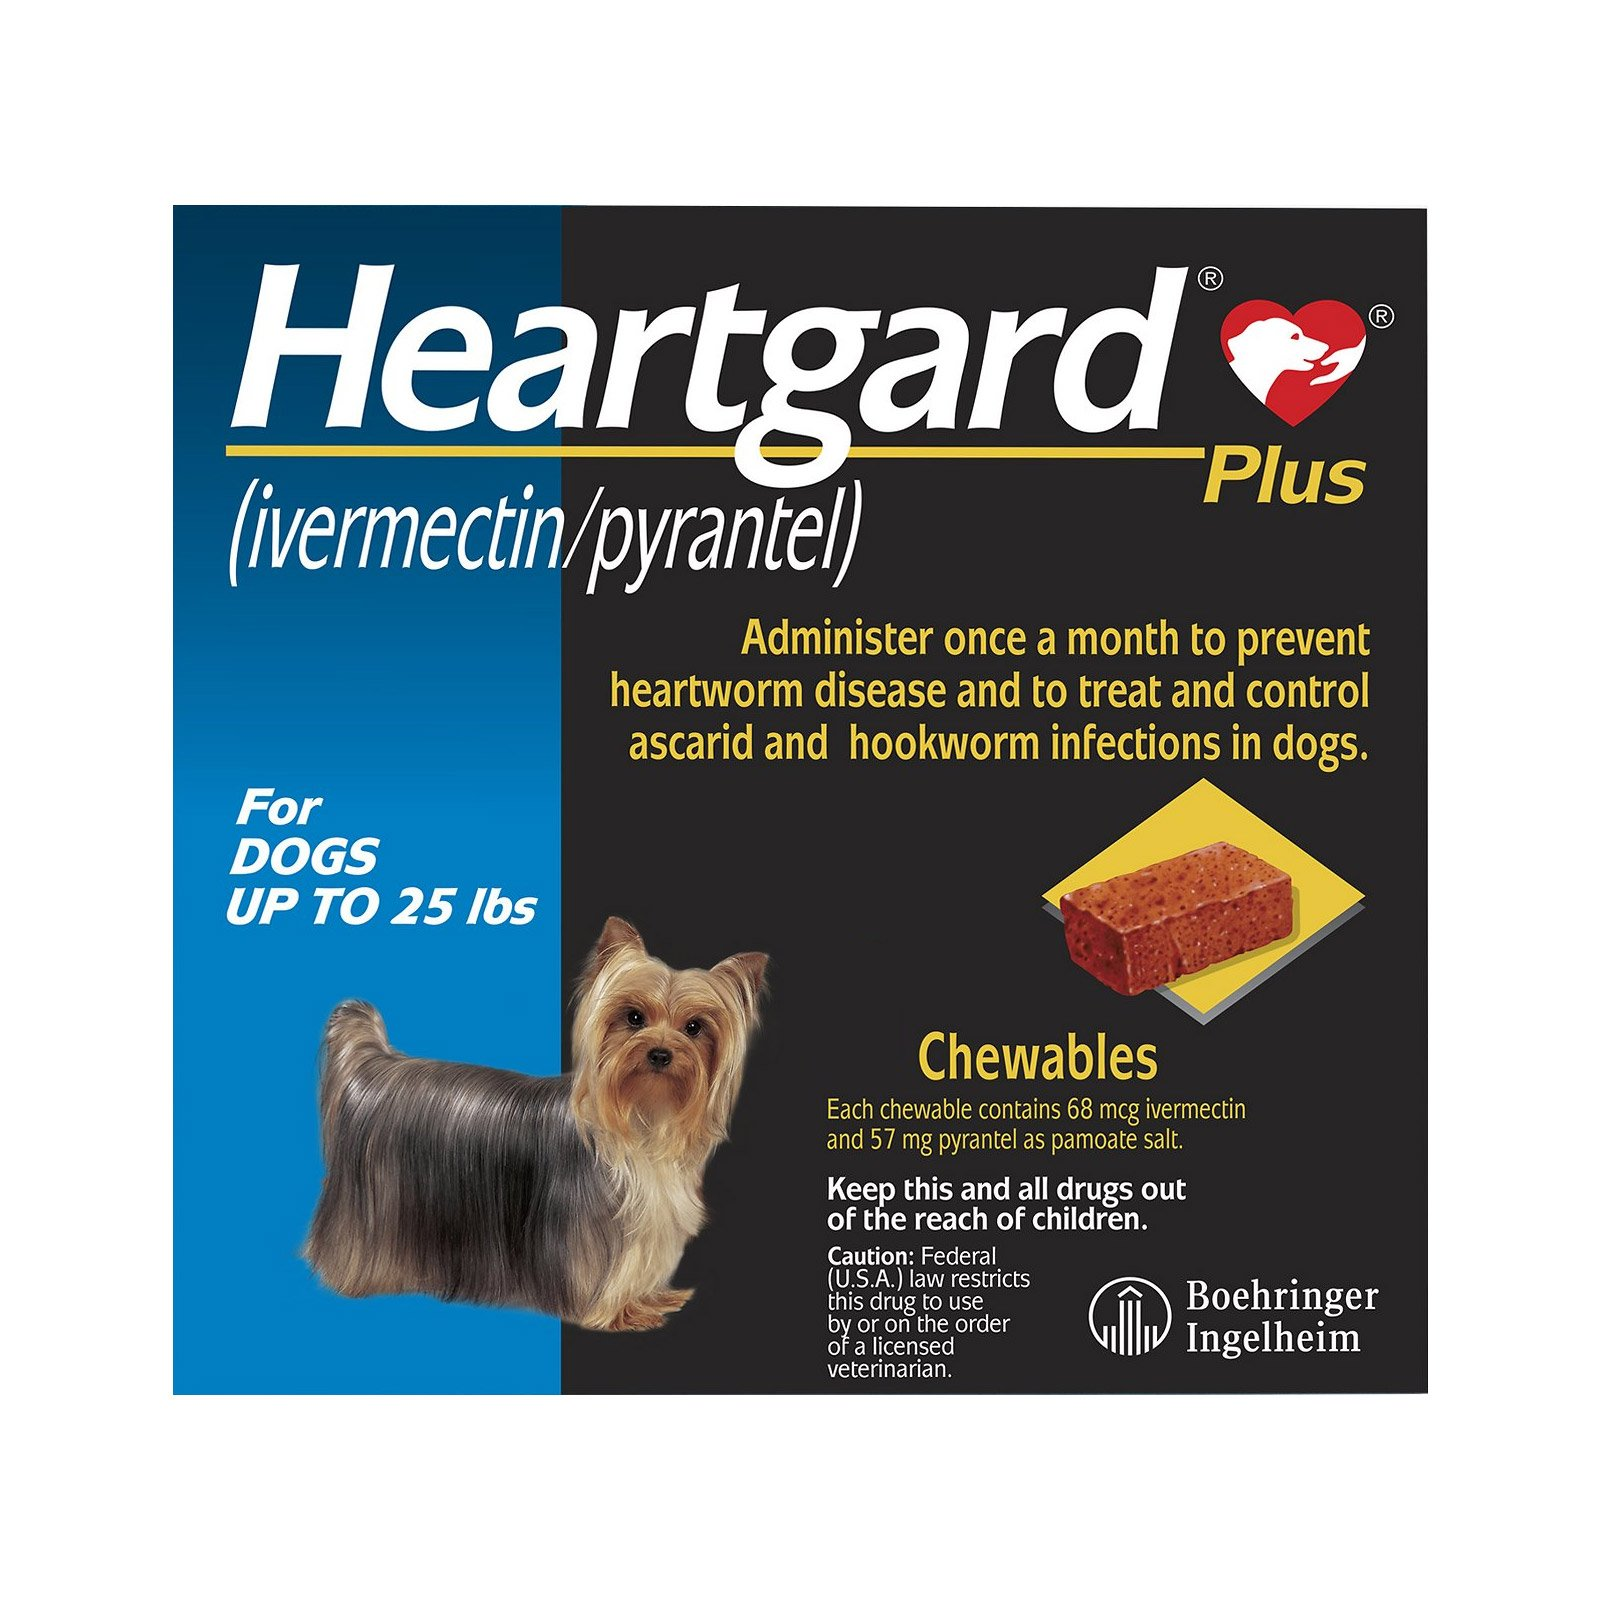 heartgard-plus-chewables-small-dogs-up-to-25lbs-blue